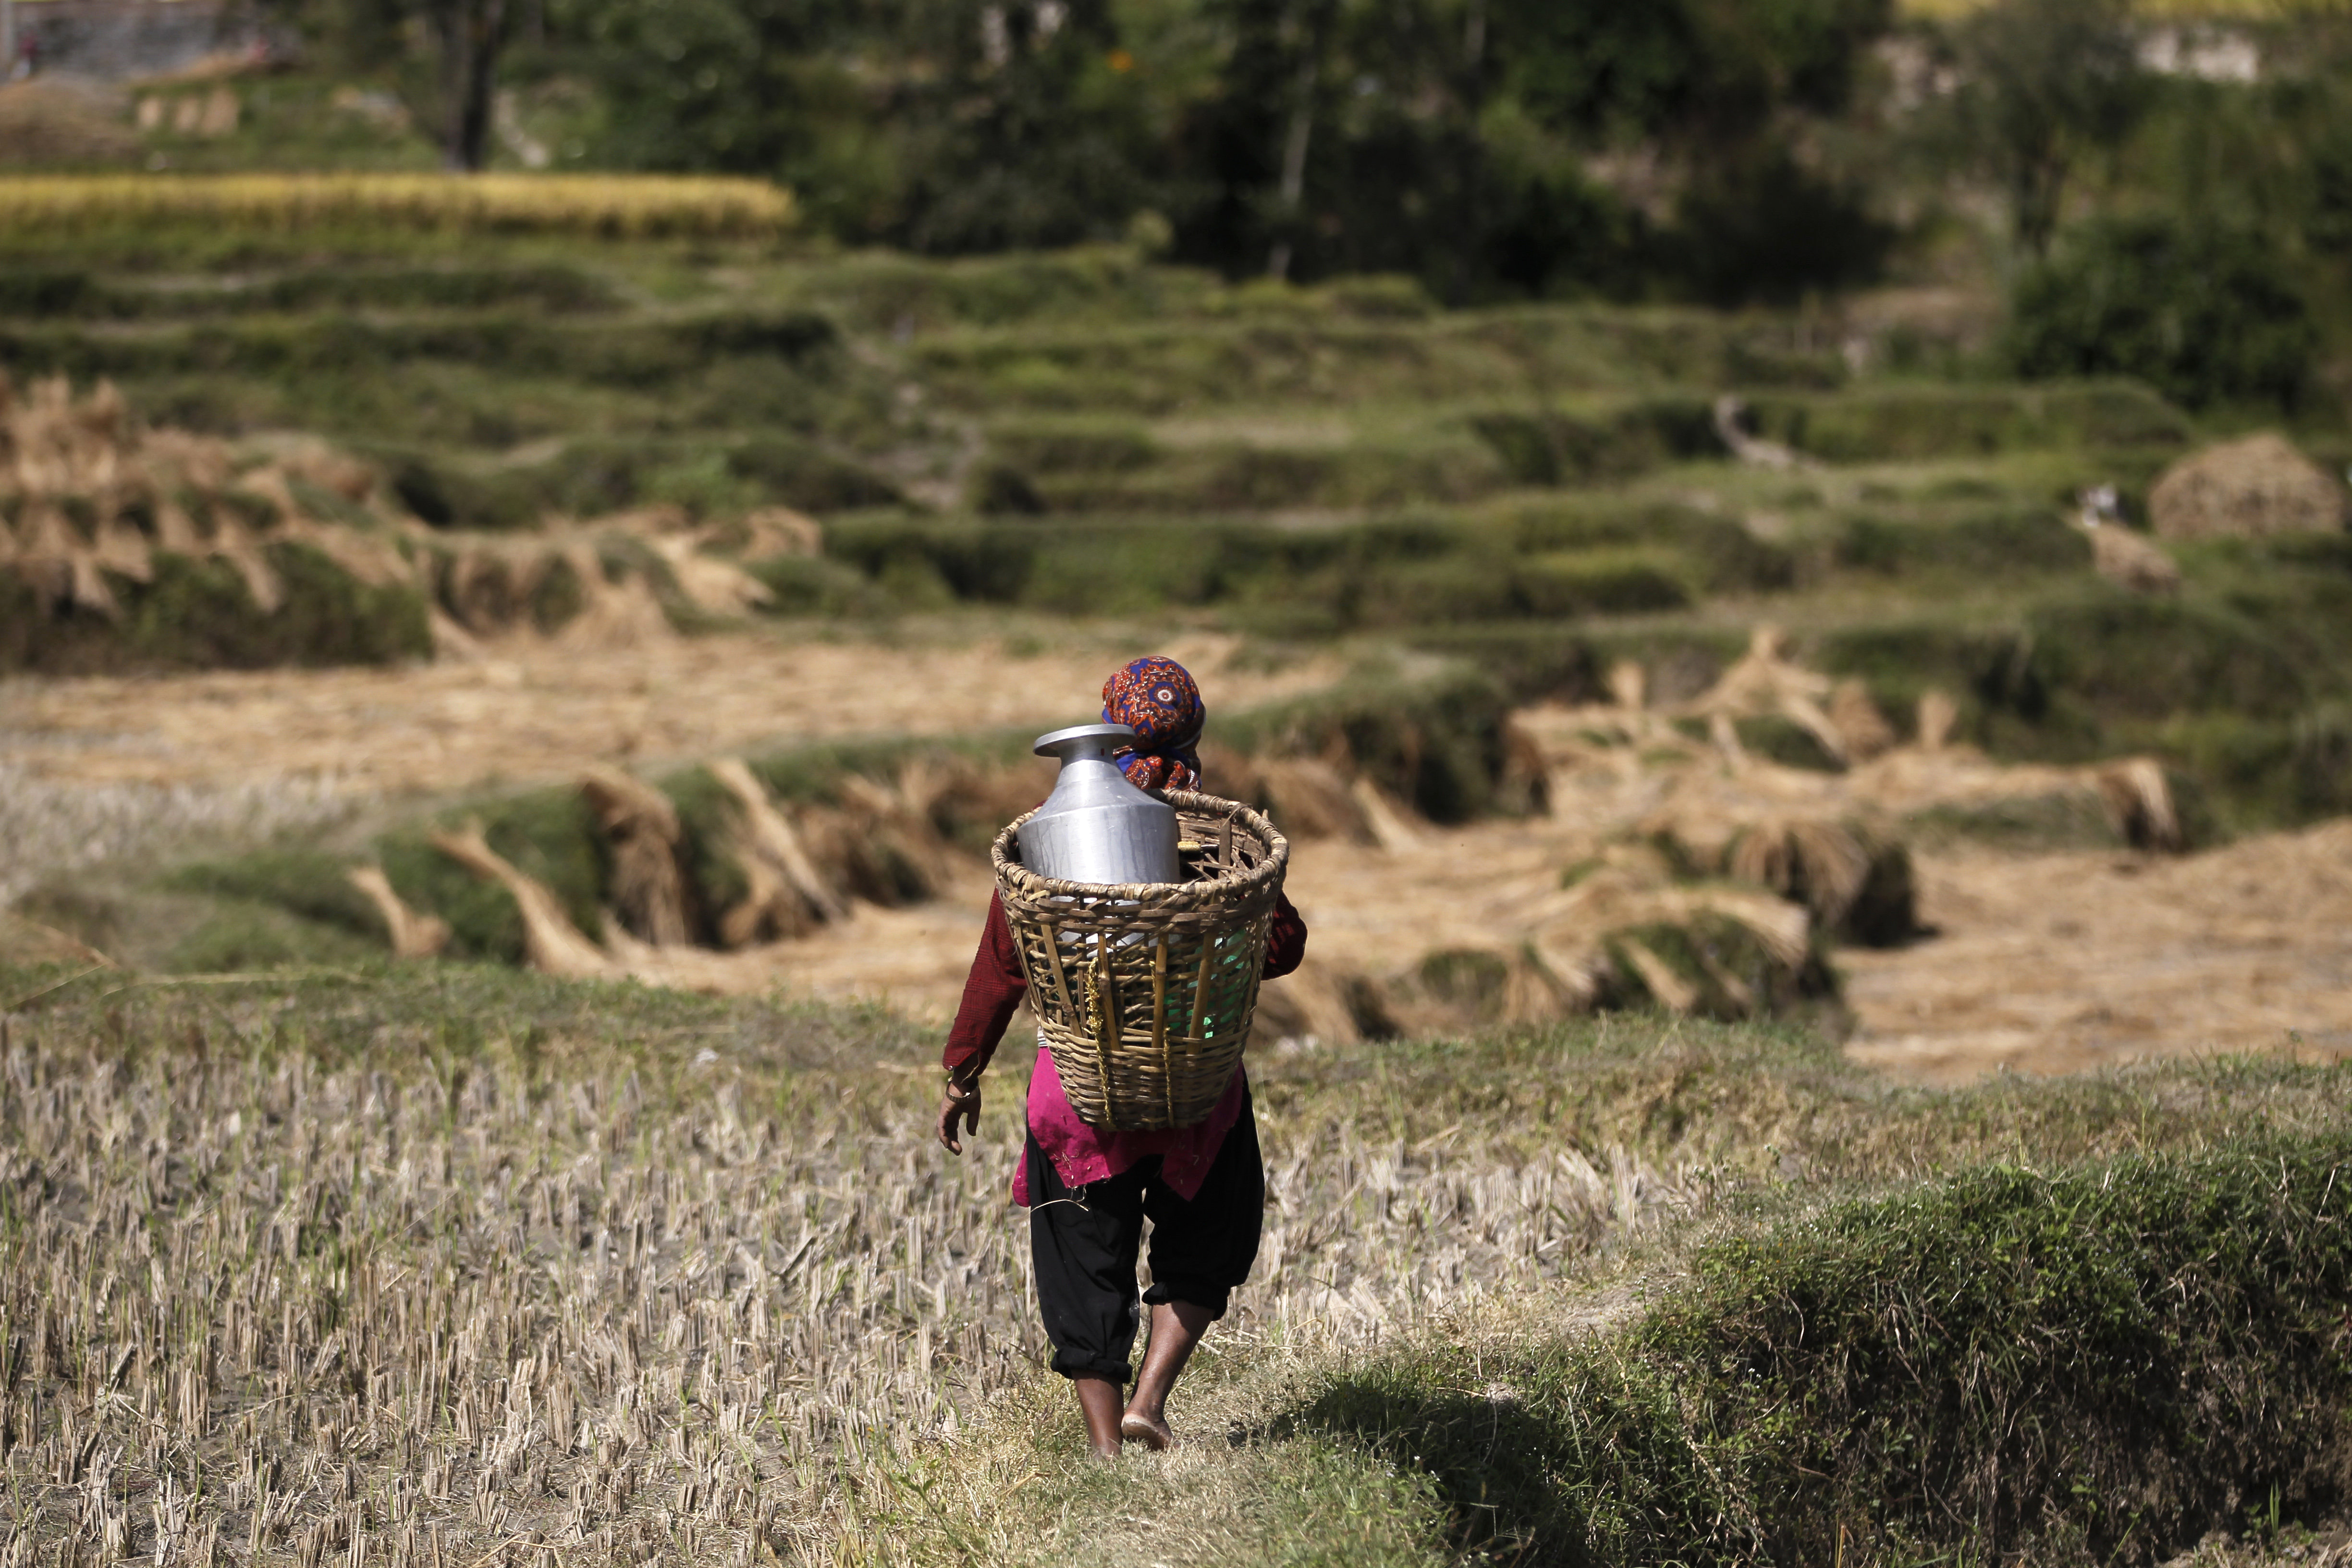 A Nepalese farmer walks to fill water in a vessel while harvesting paddy in Chunnikhel, on the outskirts of Kathmandu, Nepal, Wednesday, Oct. 19, 2016. According to the World Bank, agriculture is the main source of food, income, and employment for the majority in Nepal. (AP Photo/Niranjan Shrestha)